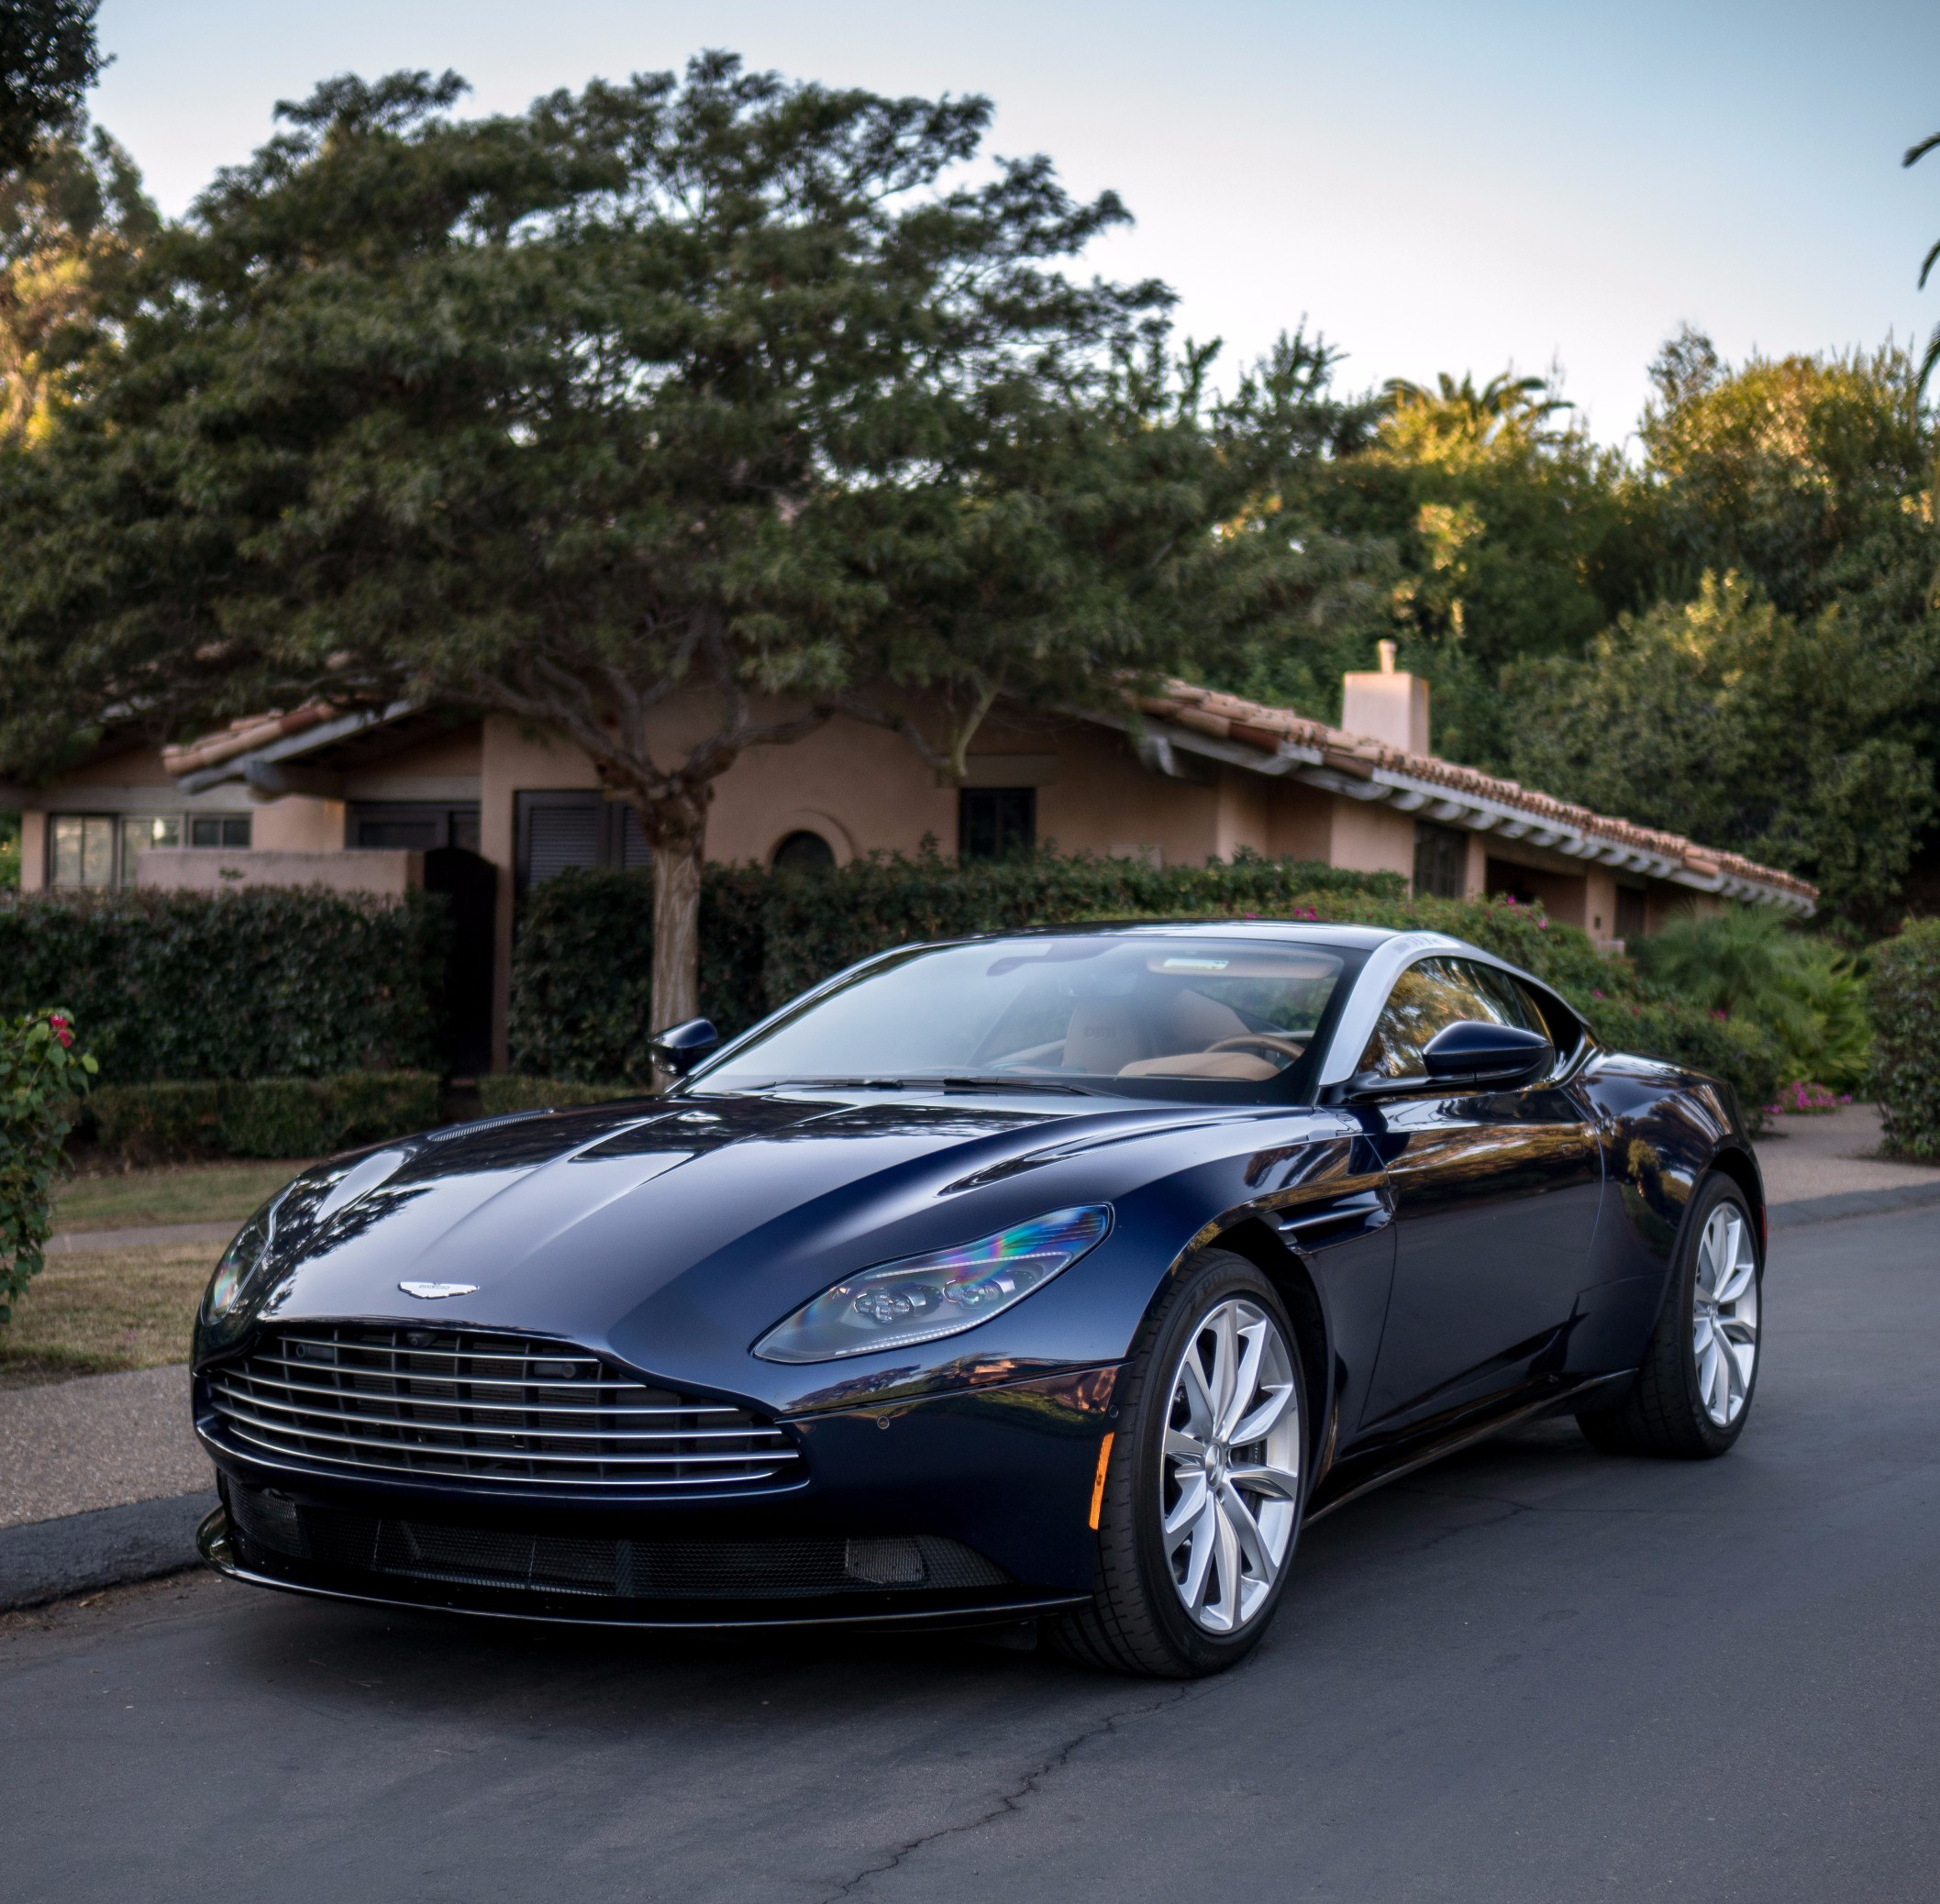 The Aston Martin DB11 V8